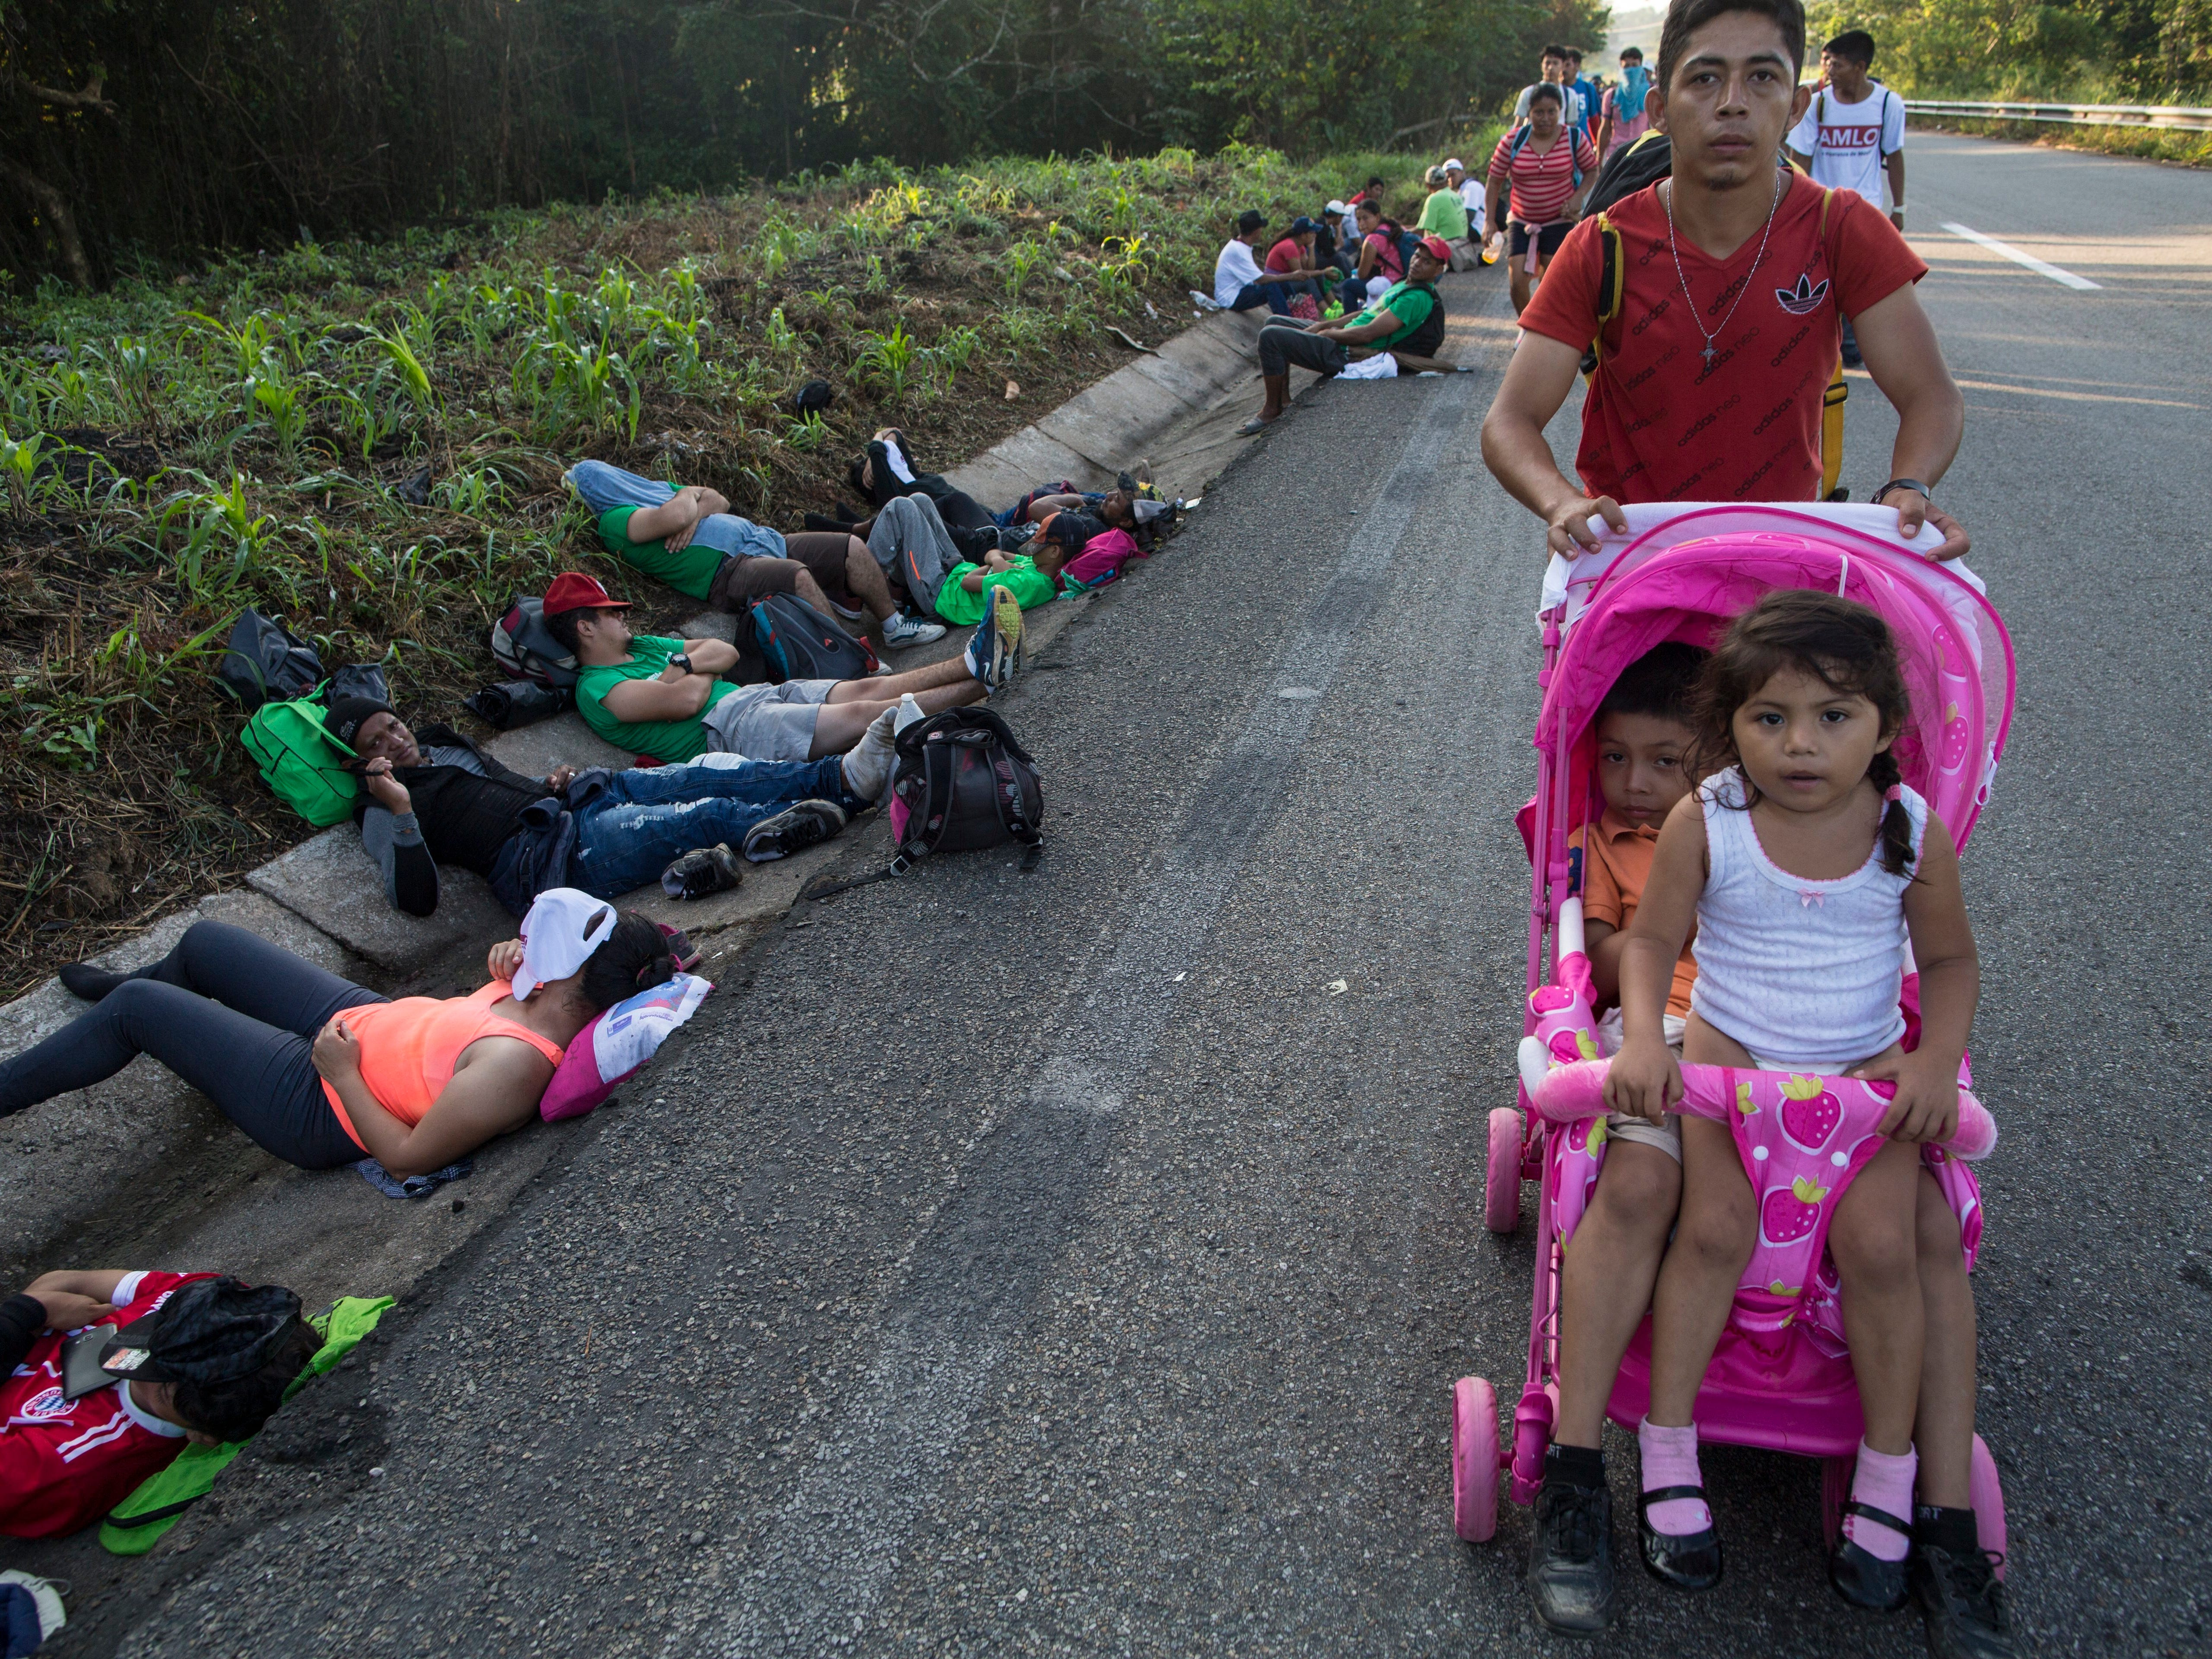 Central American migrant Cristian pushes a carriage occupied by his daughters; Karen, 5, left, and Beiyi, 4, as they make their way to Mapastepec, Mexico, Wednesday, Oct. 24, 2018, in a caravan headed to the U.S.